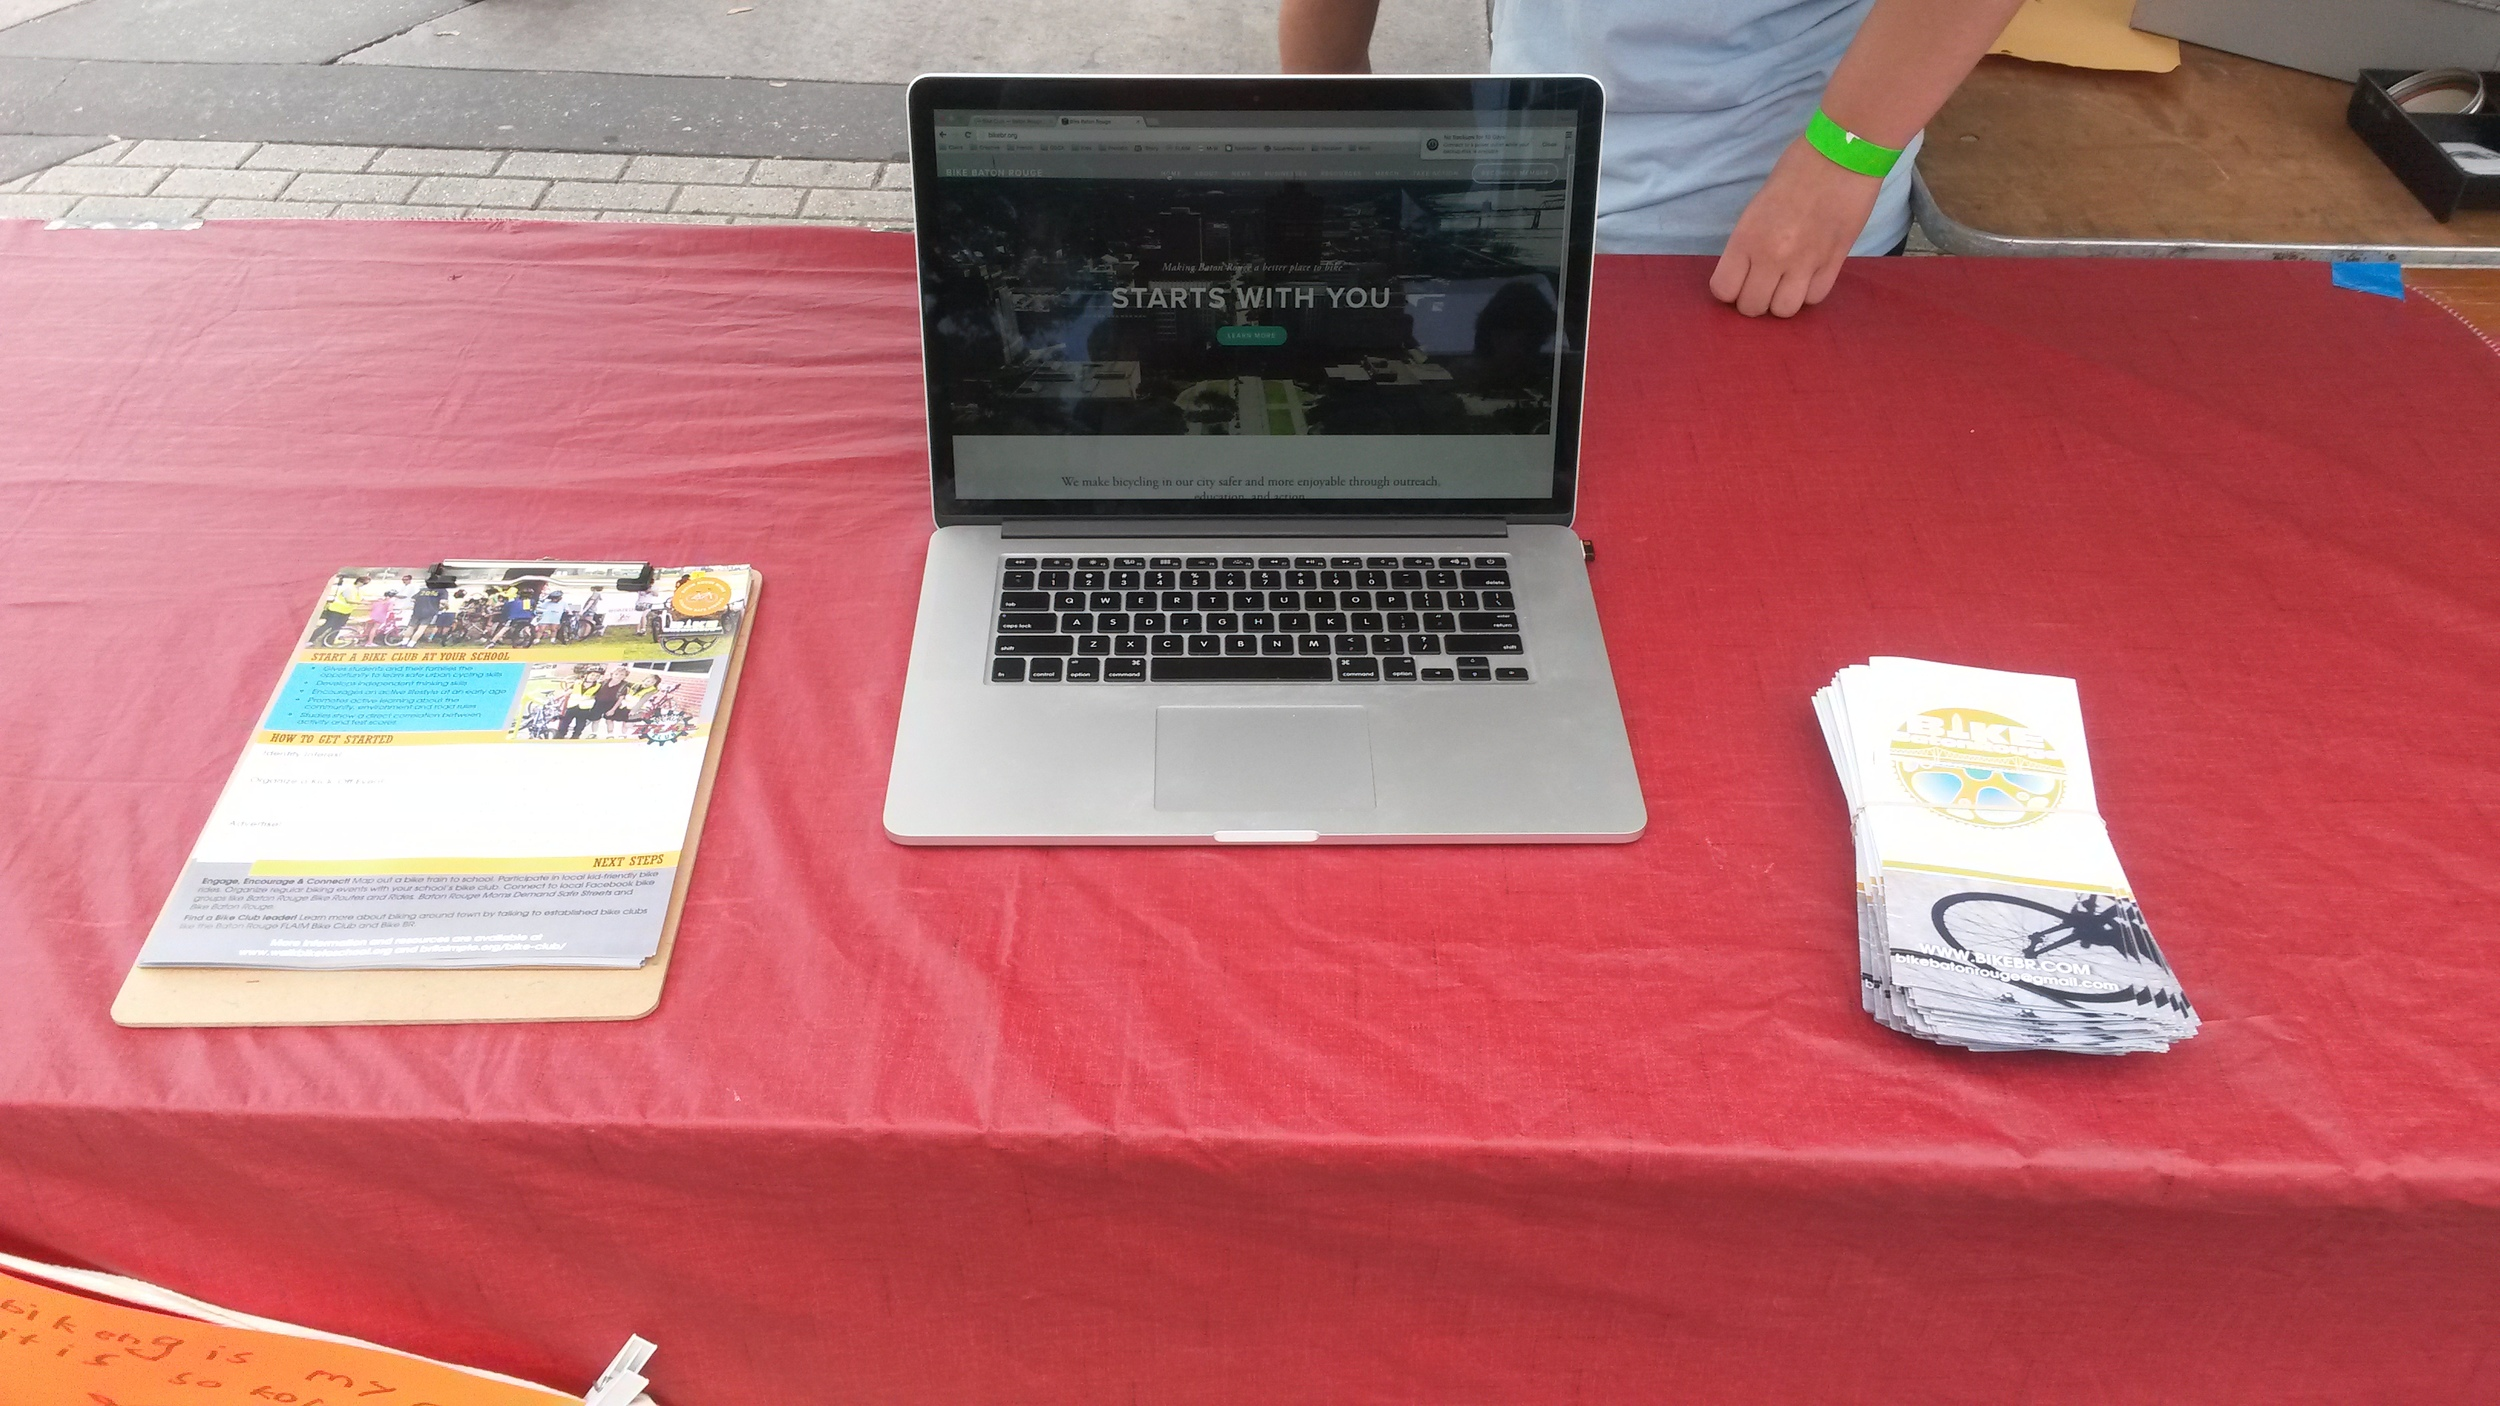 We have a table set up at Earth Day!